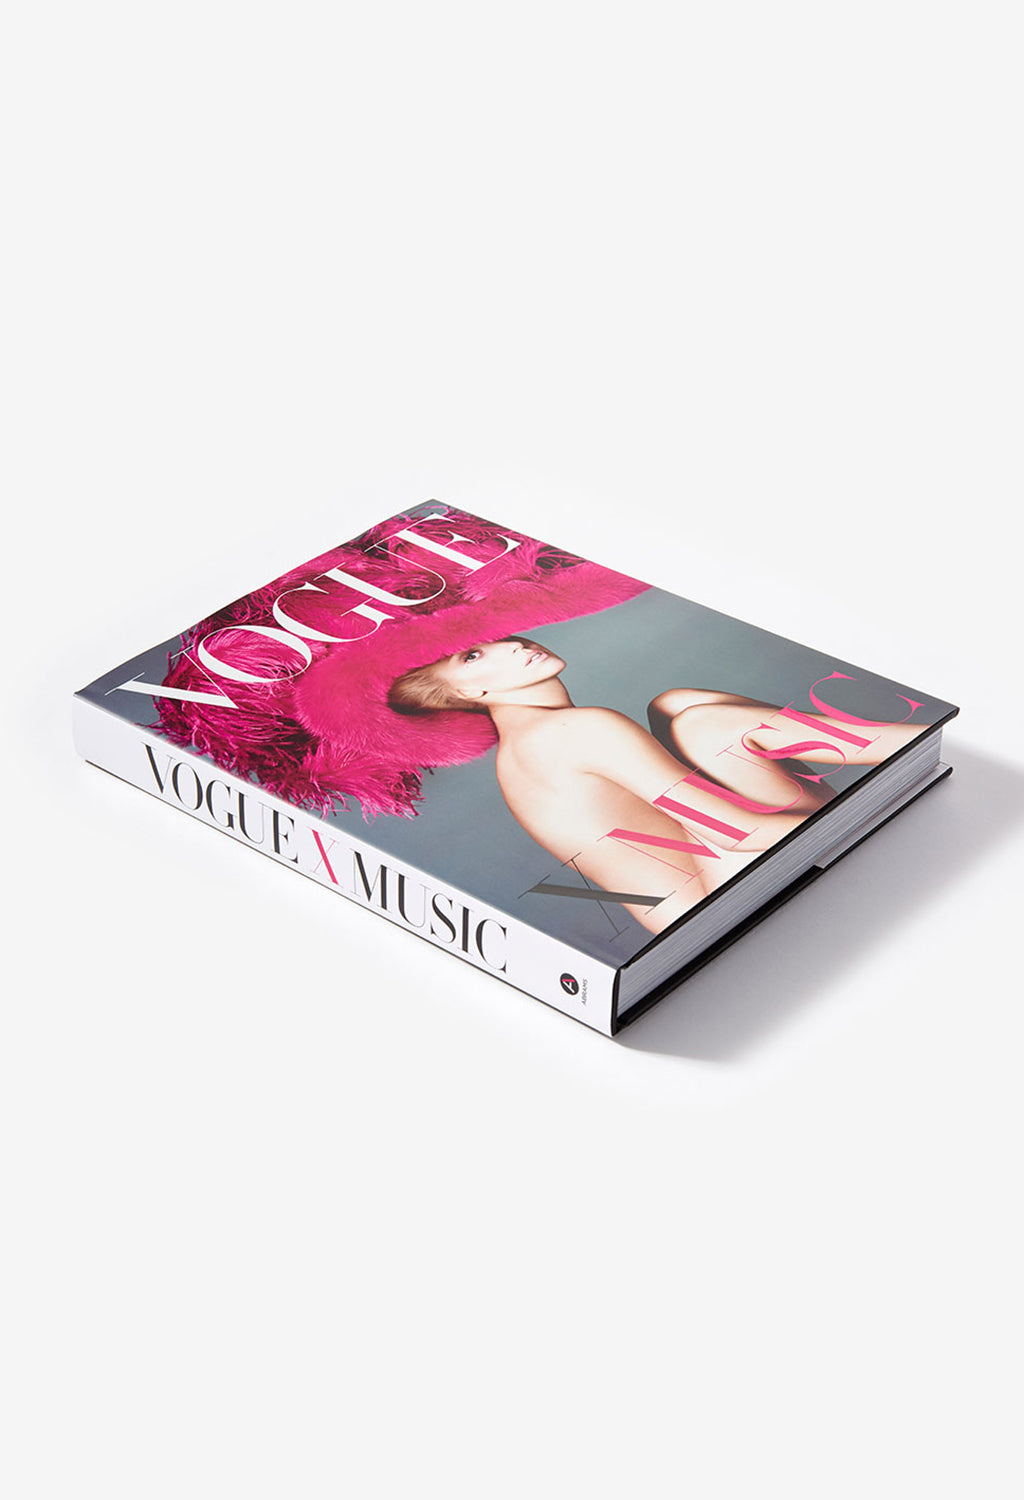 Vogue x Music Hardcover Book